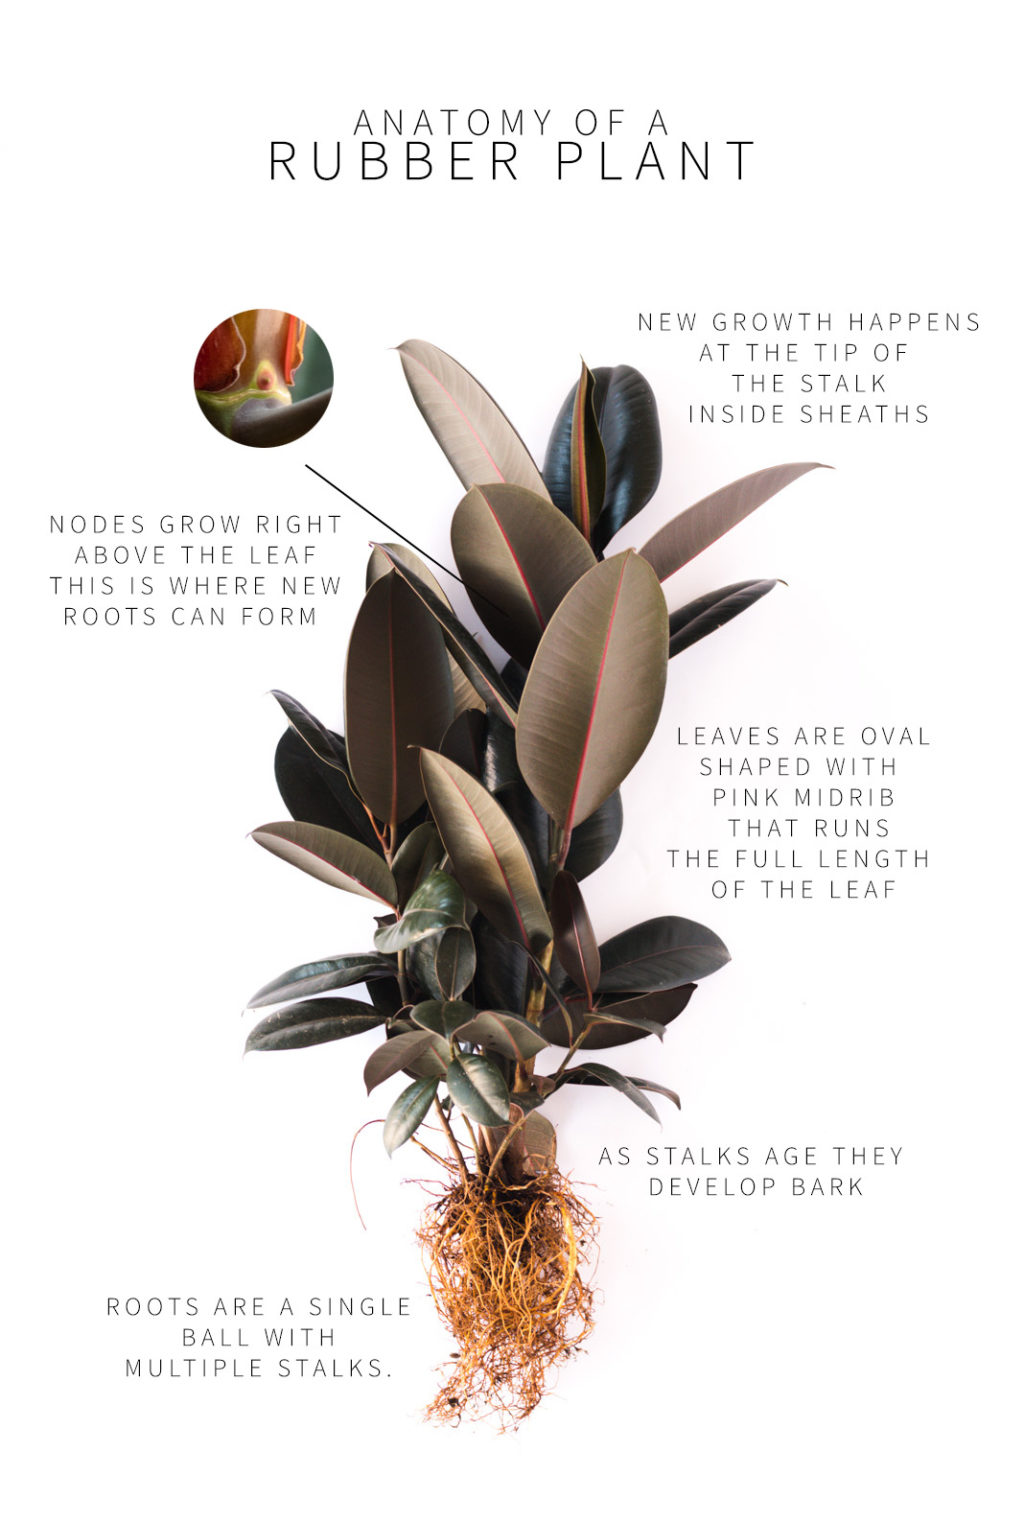 A Complete Guide To Caring For Rubber Plants And Answers To Why Yours Might Be Dying Vintage Revivals